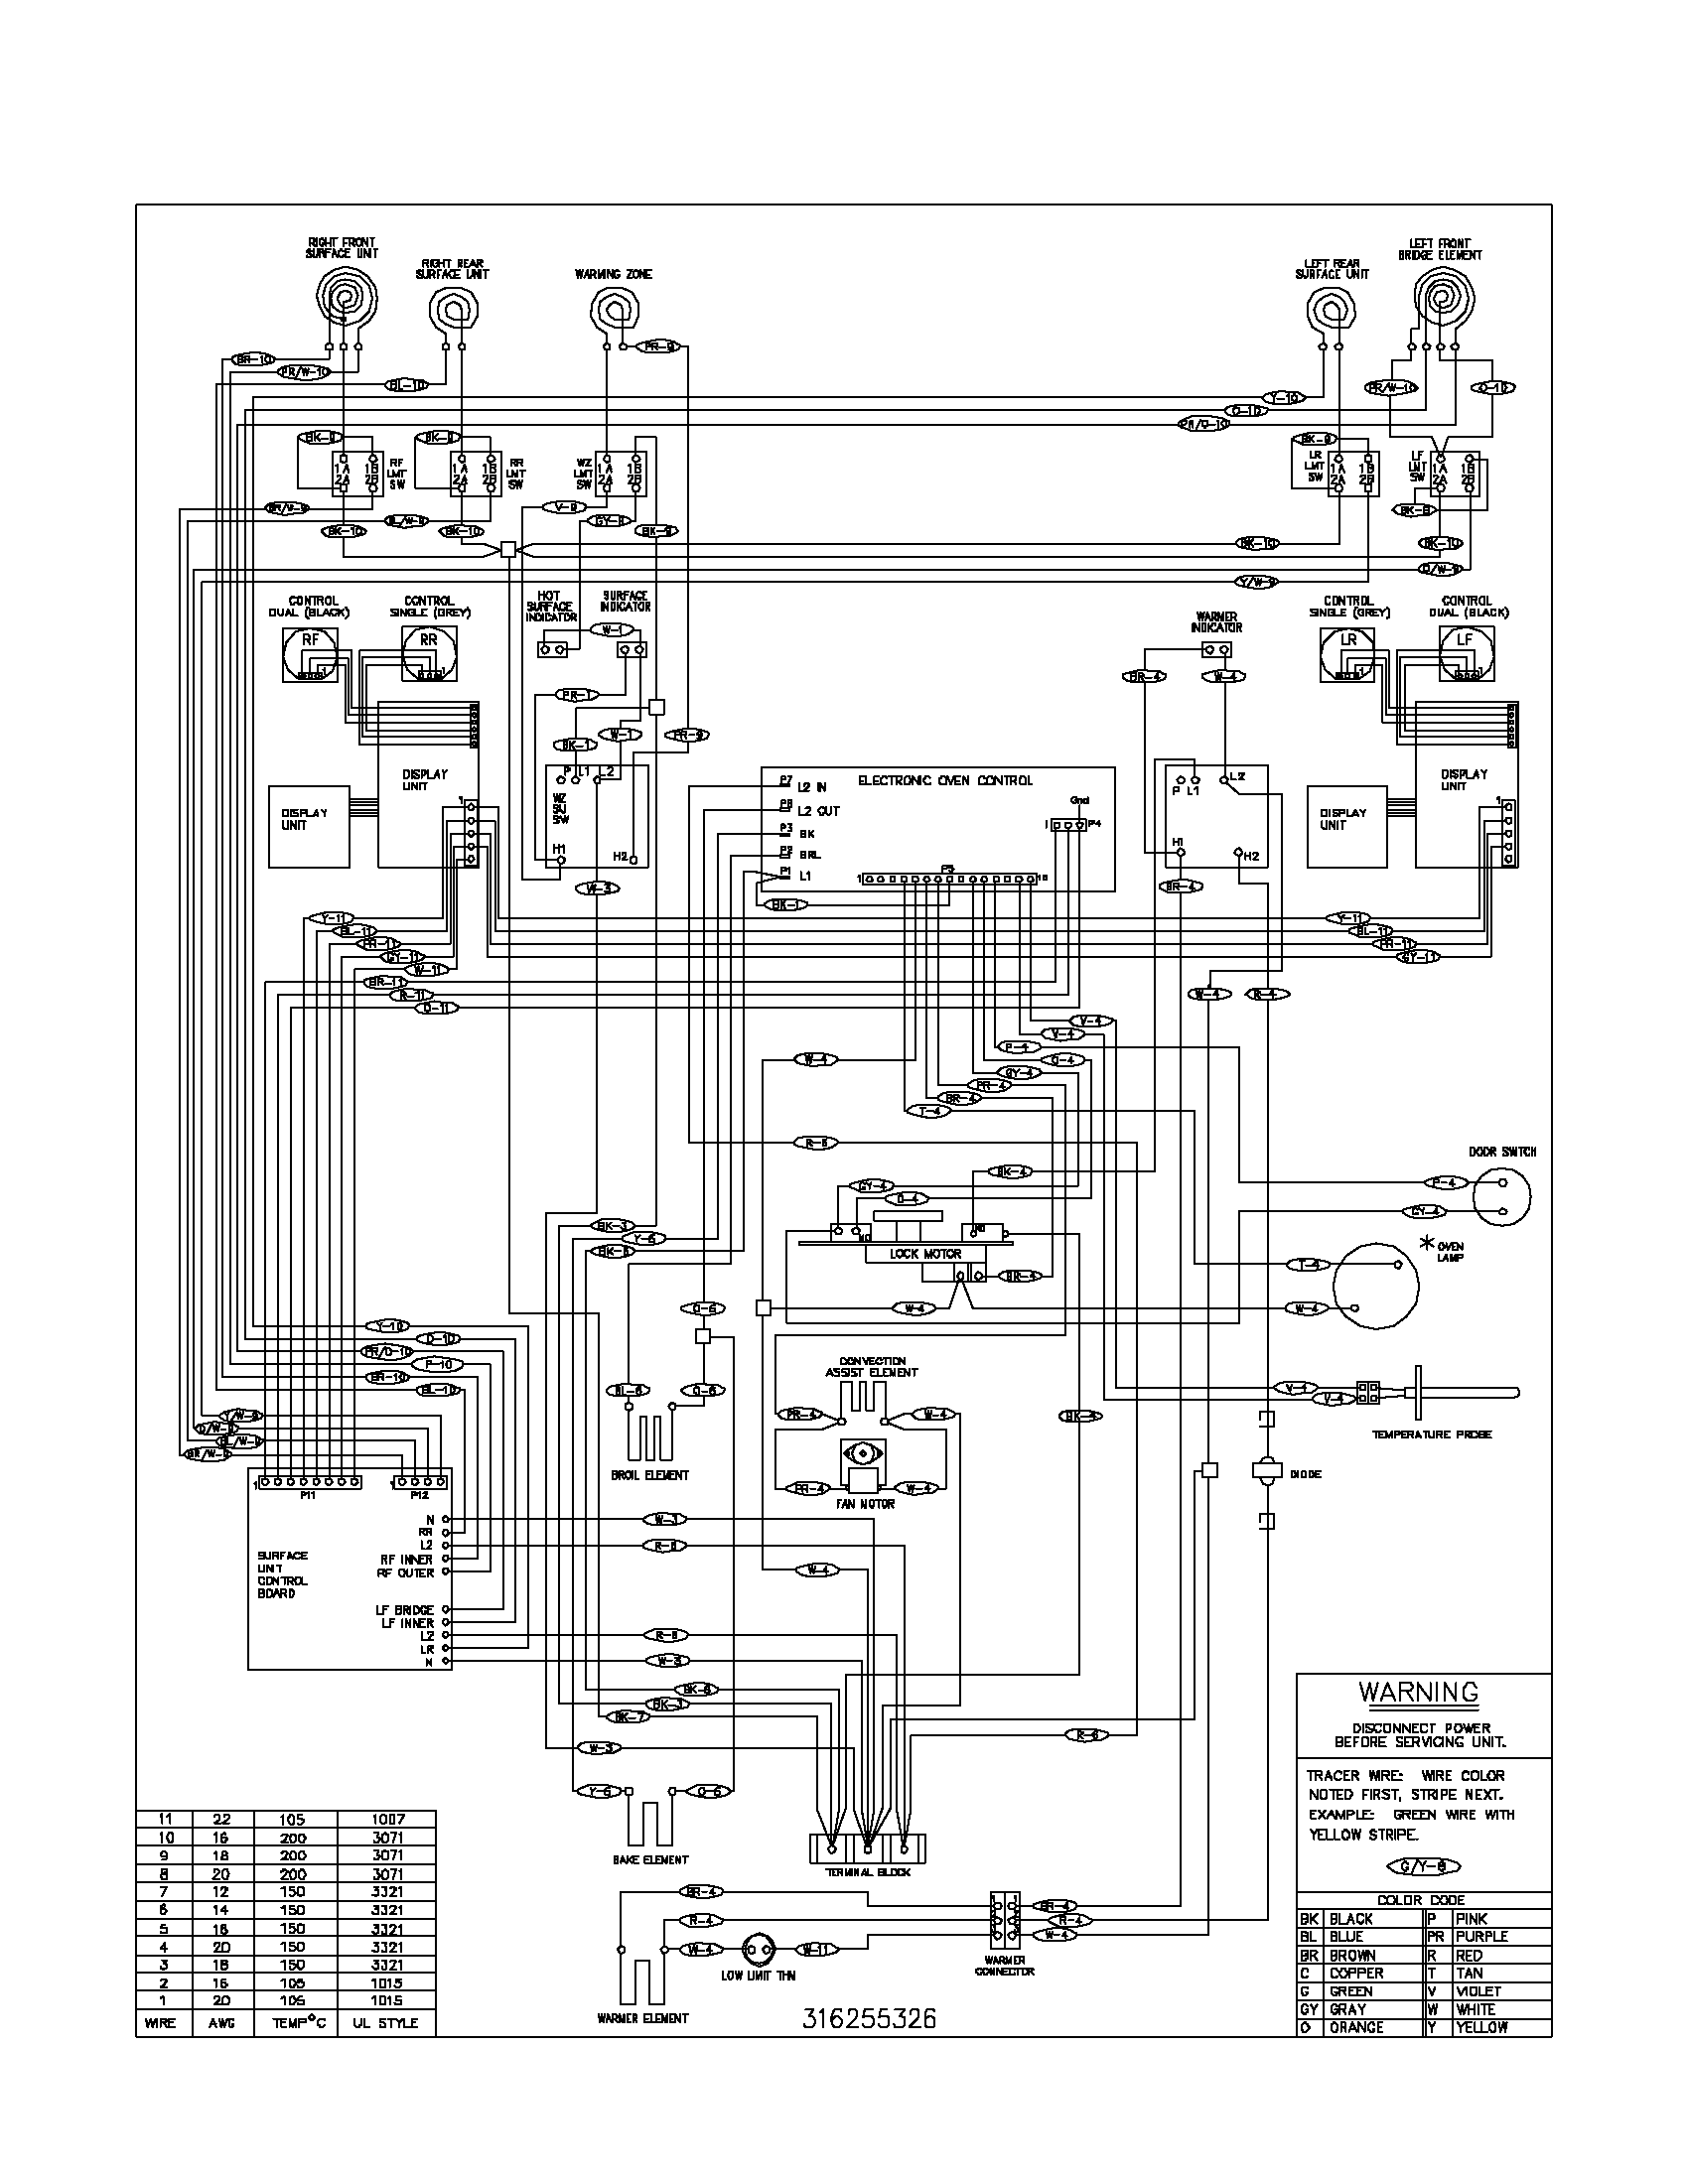 Nordyne E2eb 015hb Thermostat Wiring Diagram Model E2eb